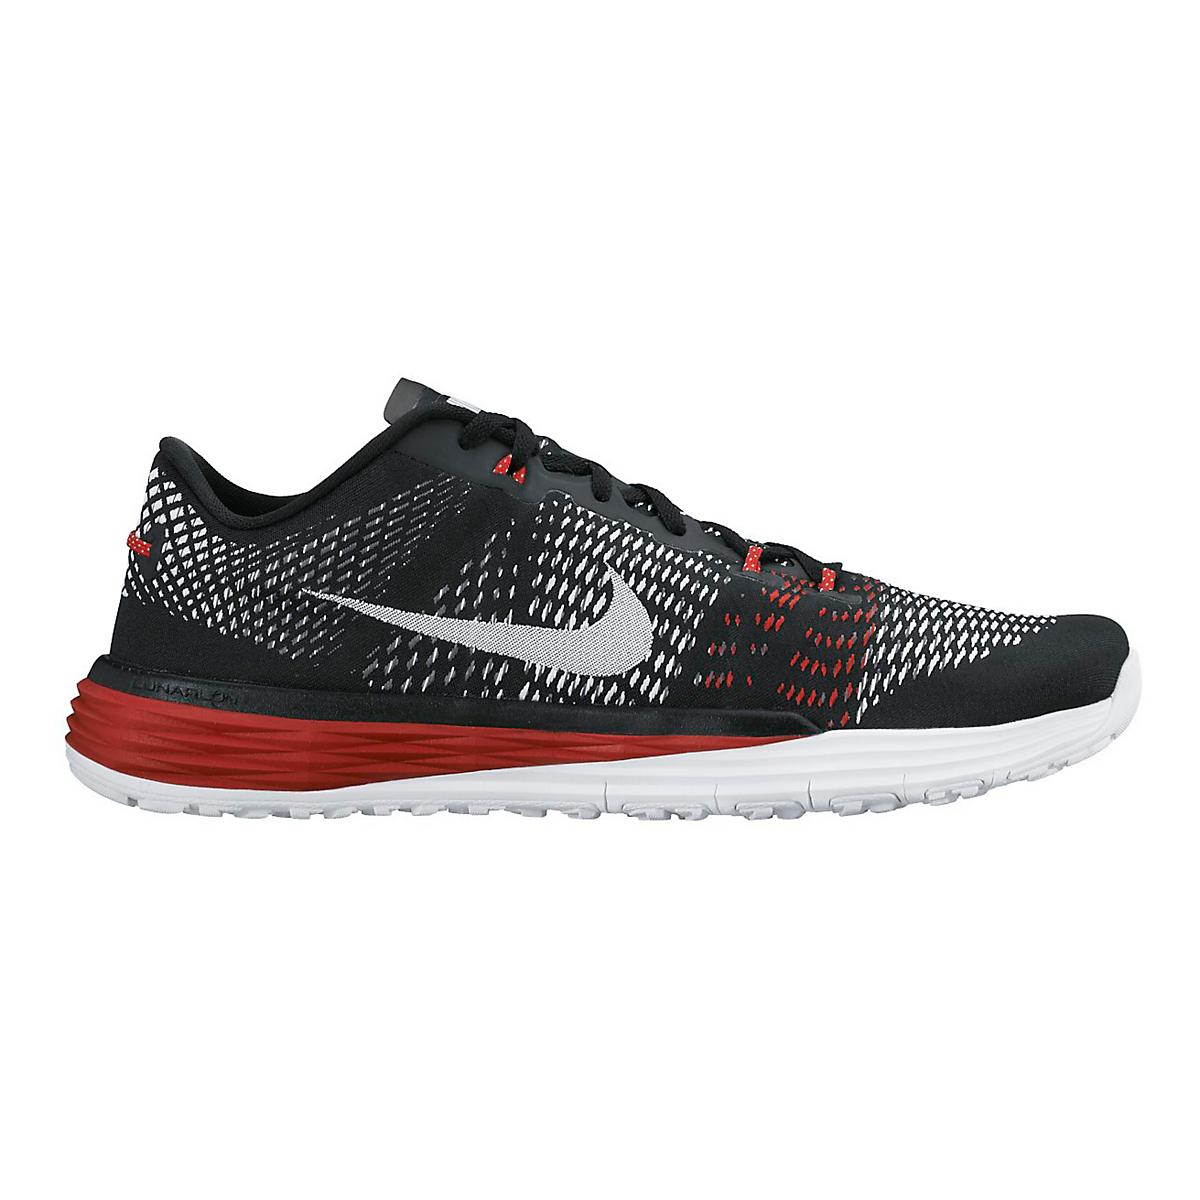 2c7456381300 Mens Nike Lunar Caldra Cross Training Shoe at Road Runner Sports